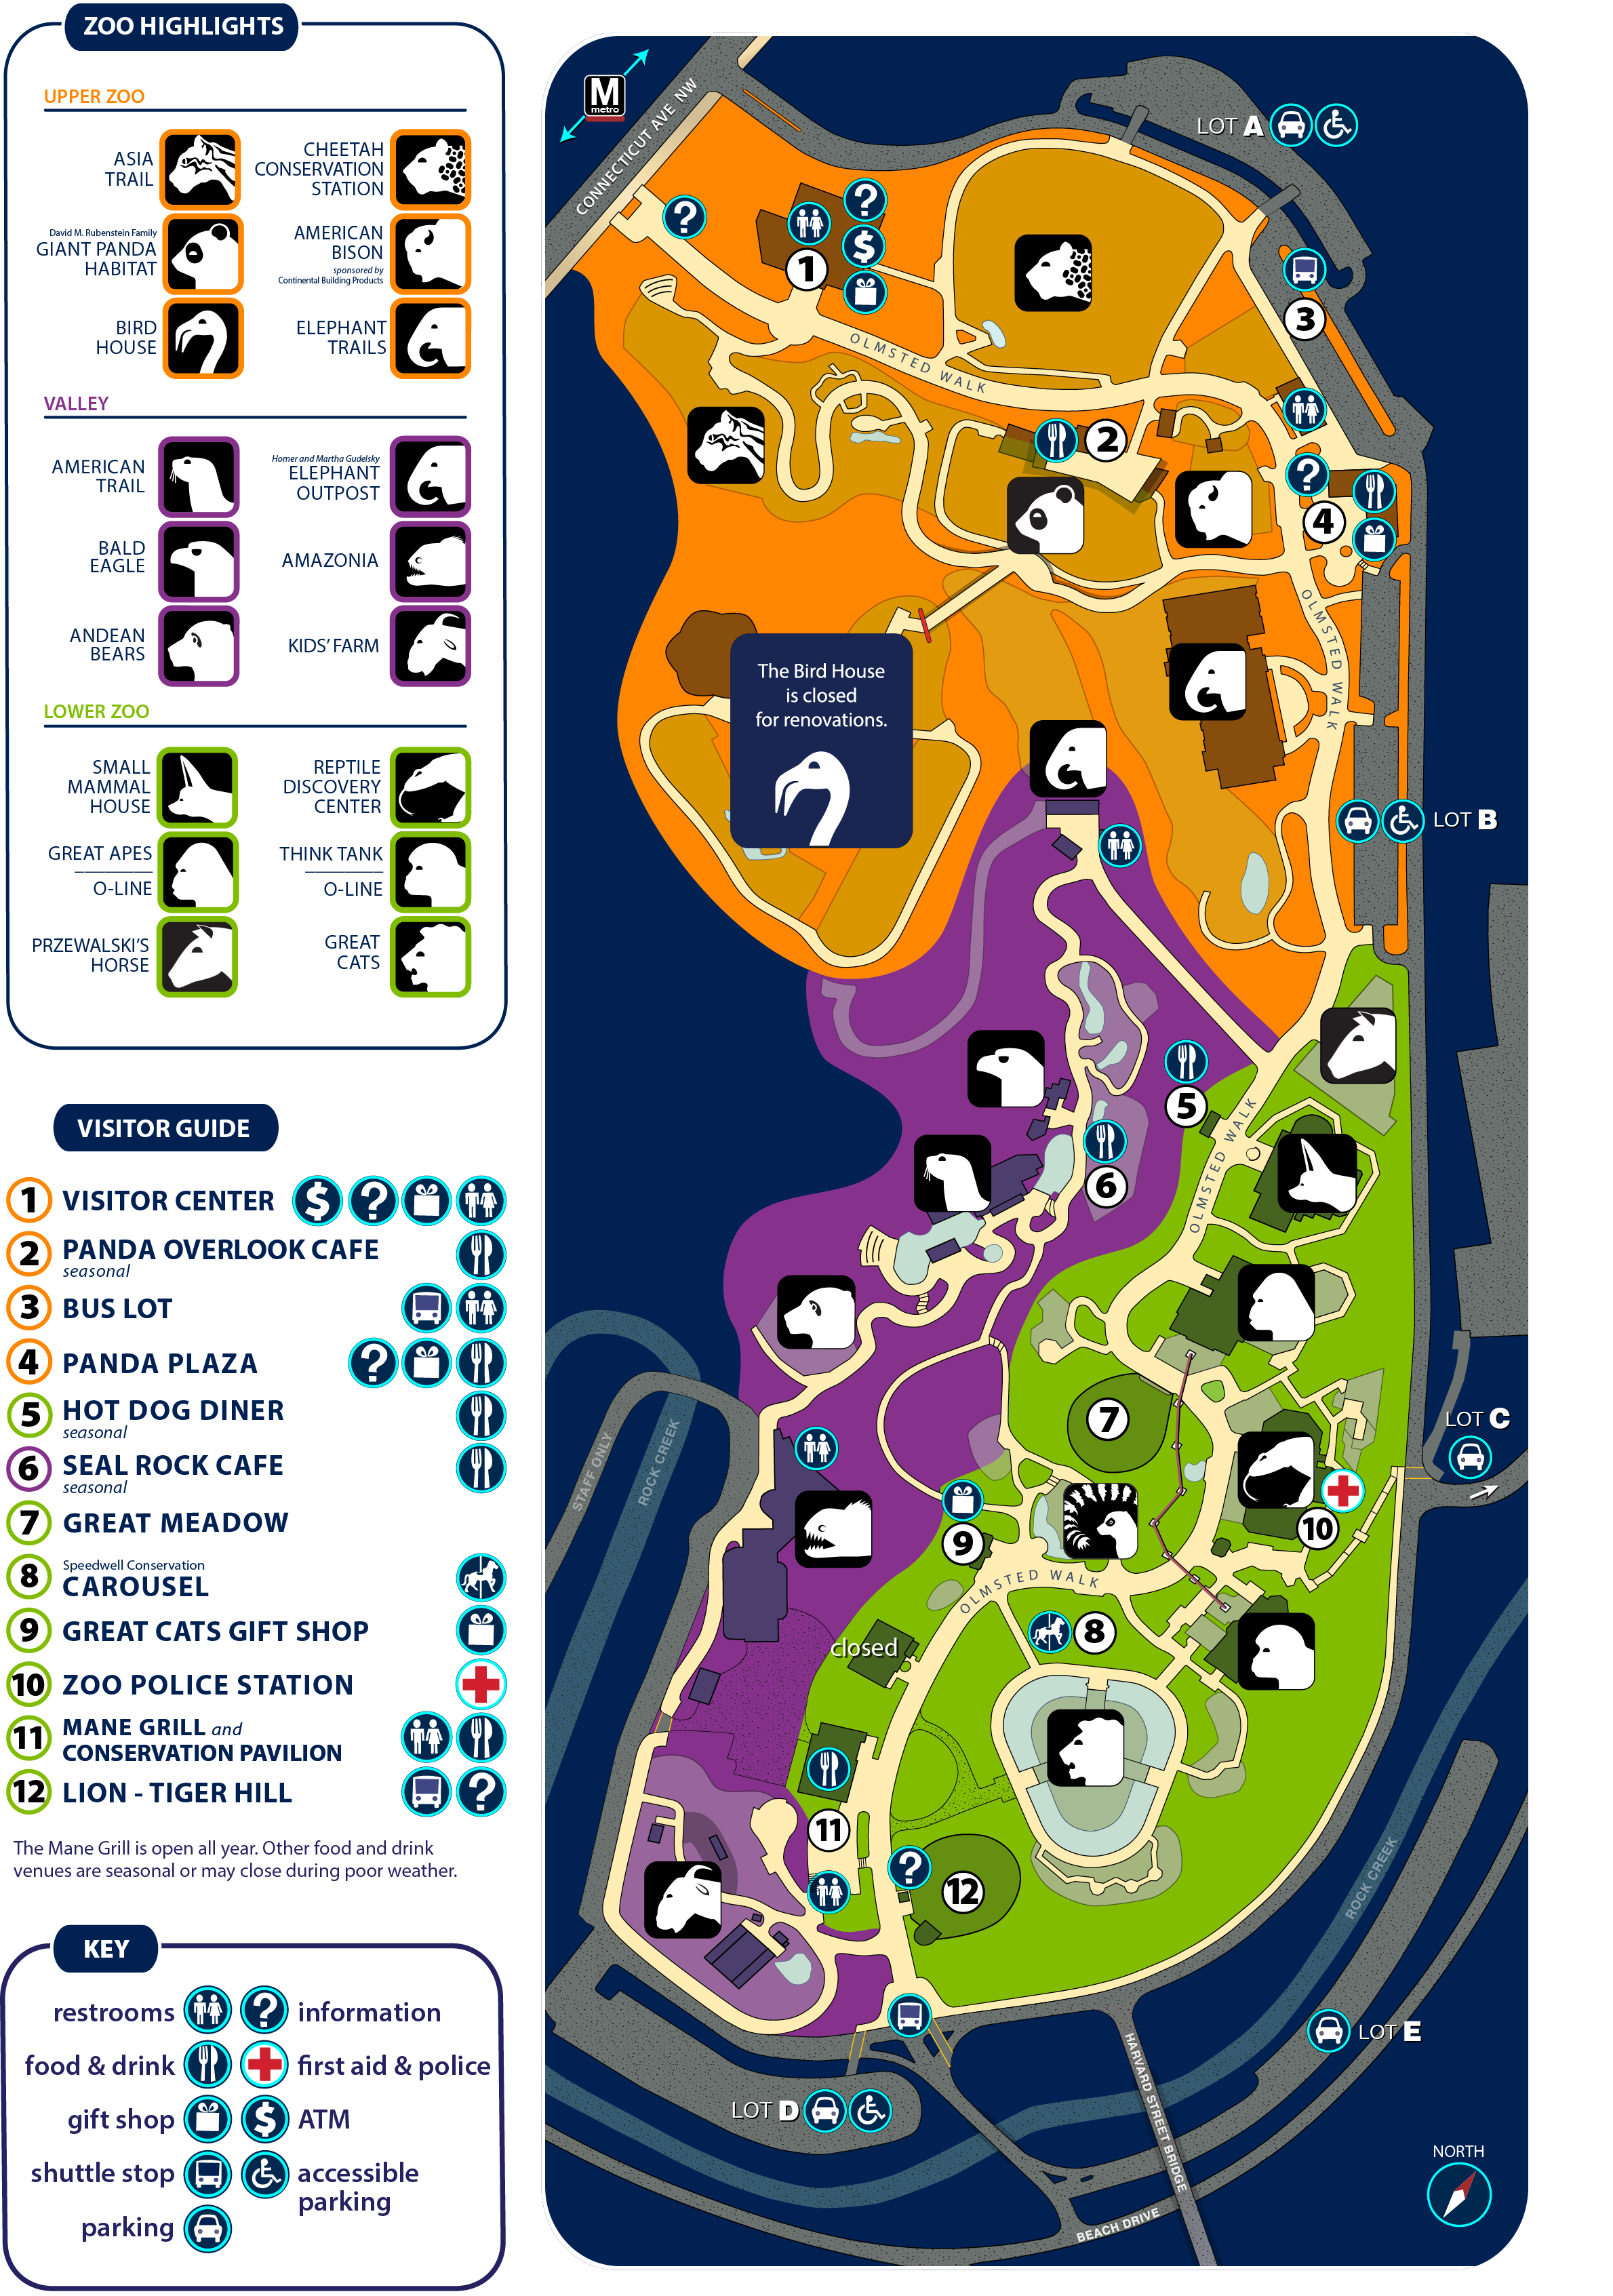 Smithsonian Zoo Map 2018 Revised Zoo Map_10.22.18 | Smithsonian's National Zoo